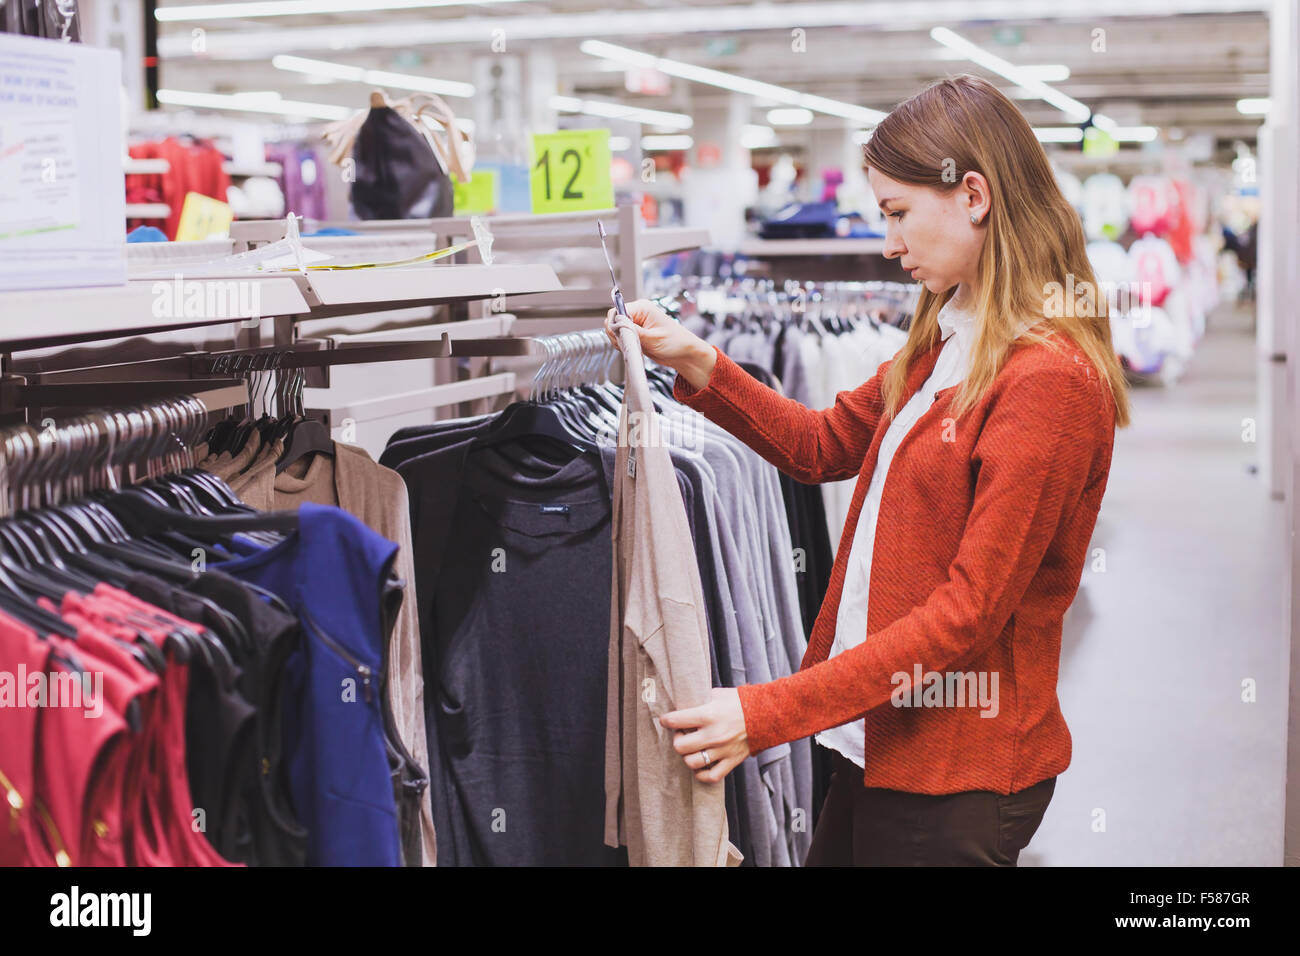 Cheap Clothes Stock Photos & Cheap Clothes Stock Images - Alamy